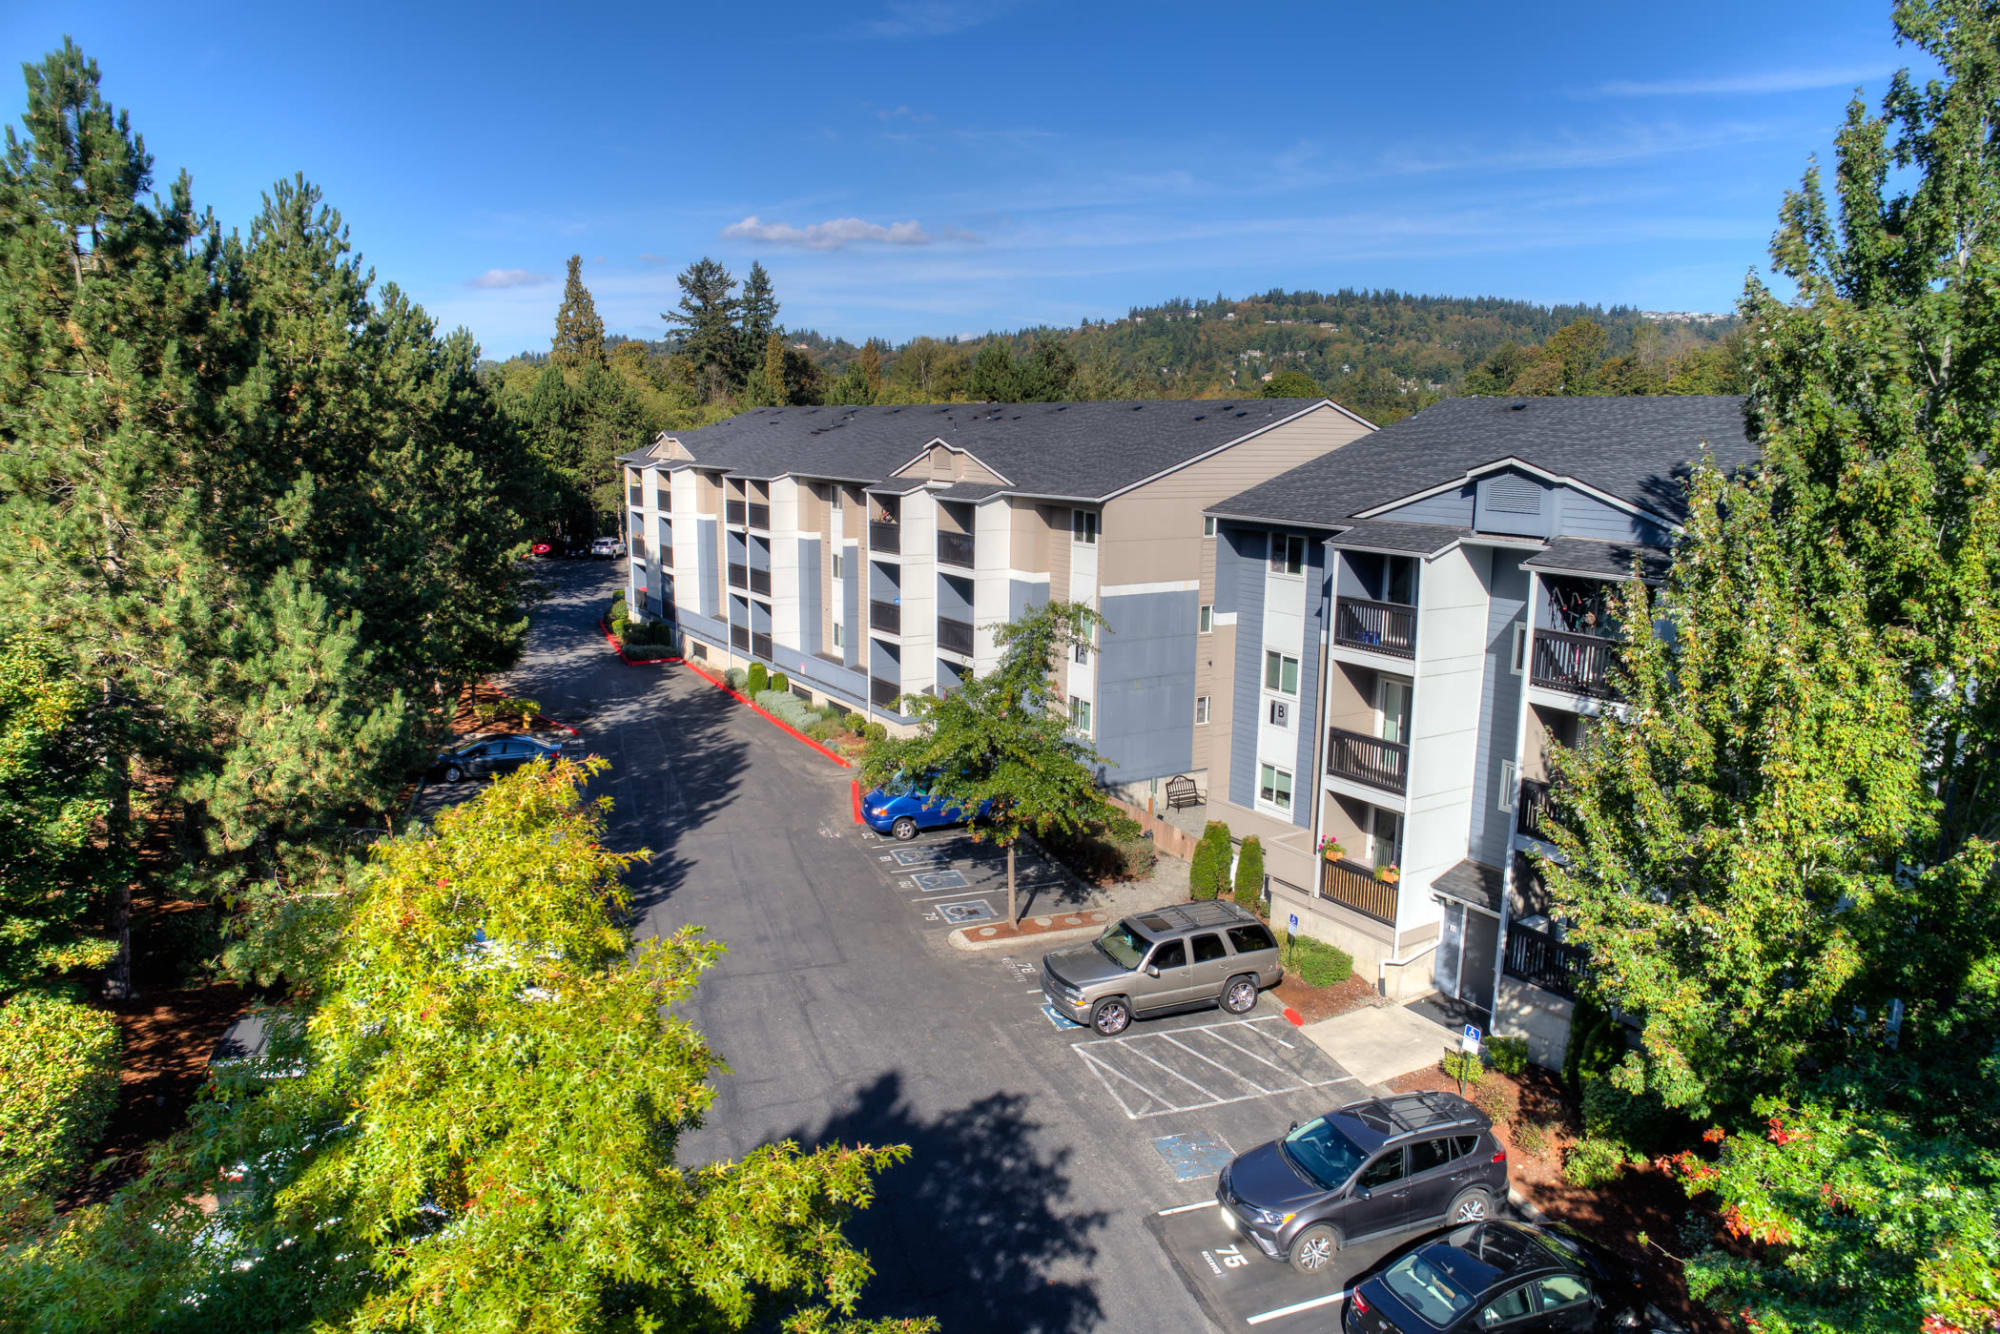 An aerial view of Karbon Apartments in Newcastle, Washington